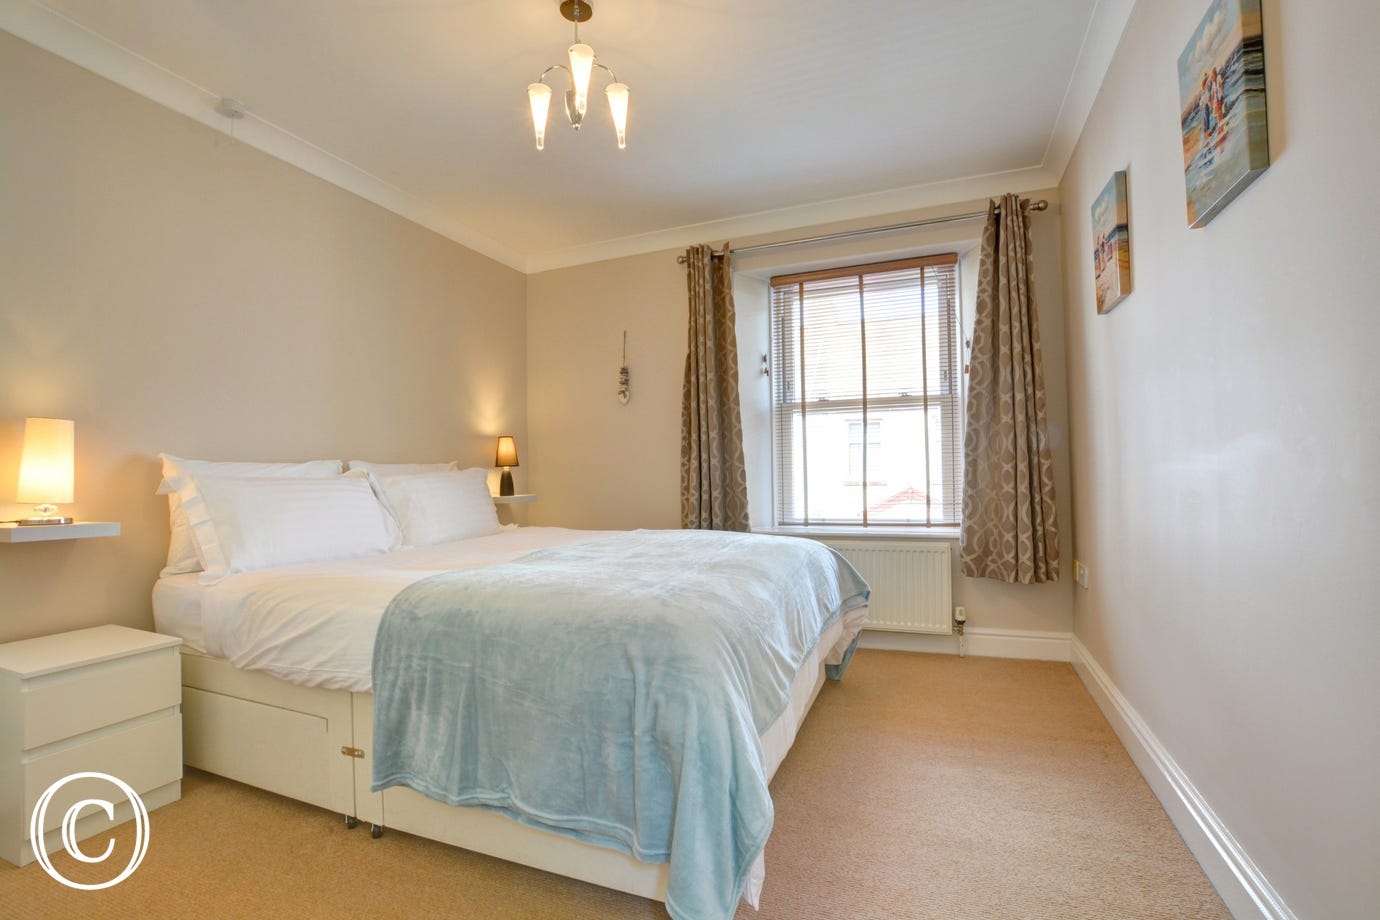 Double bed in a spacious bedroom